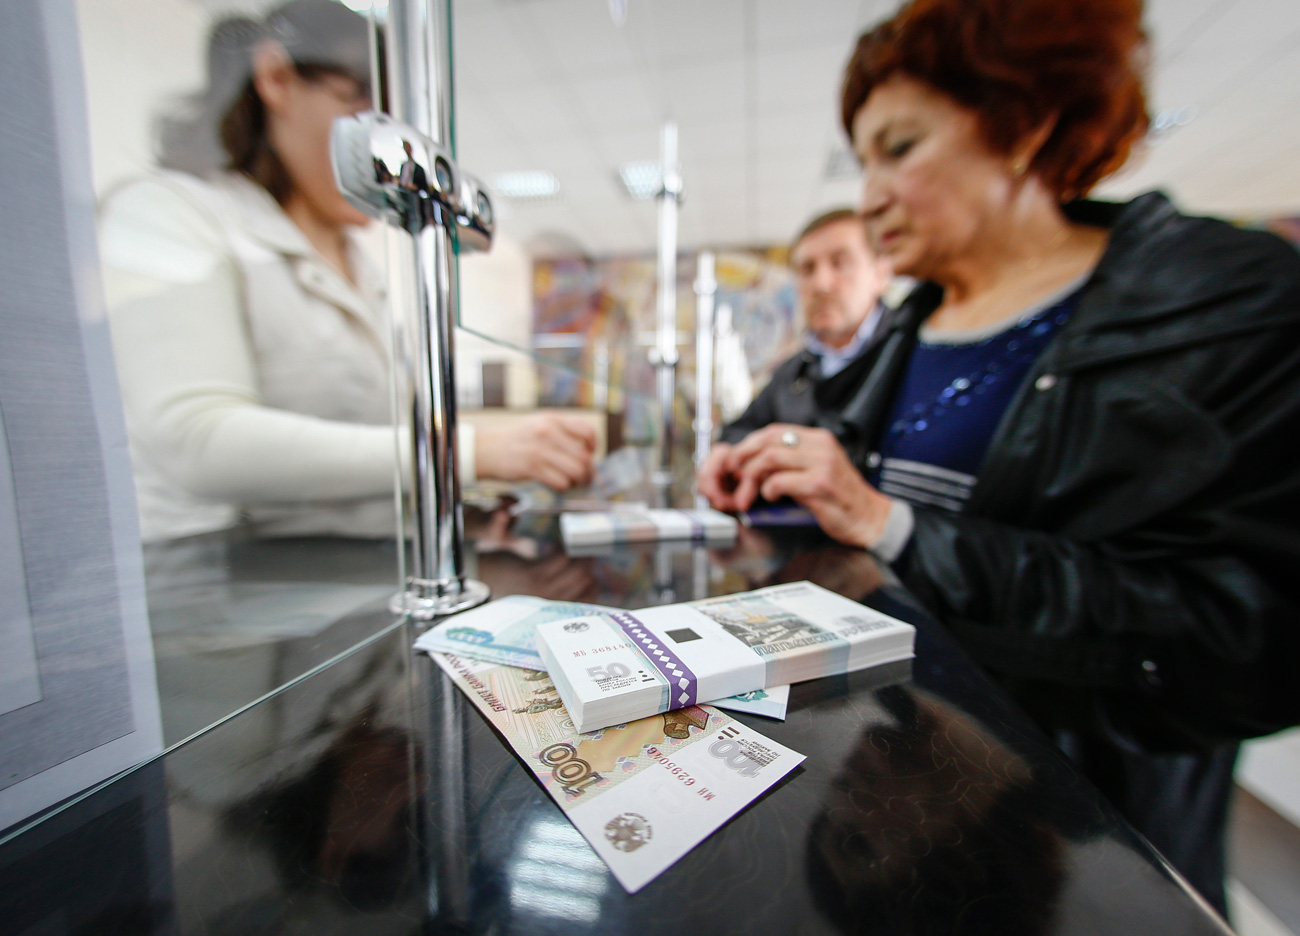 Russians' real disposable income has fallen by 12.3 percent since 2014.